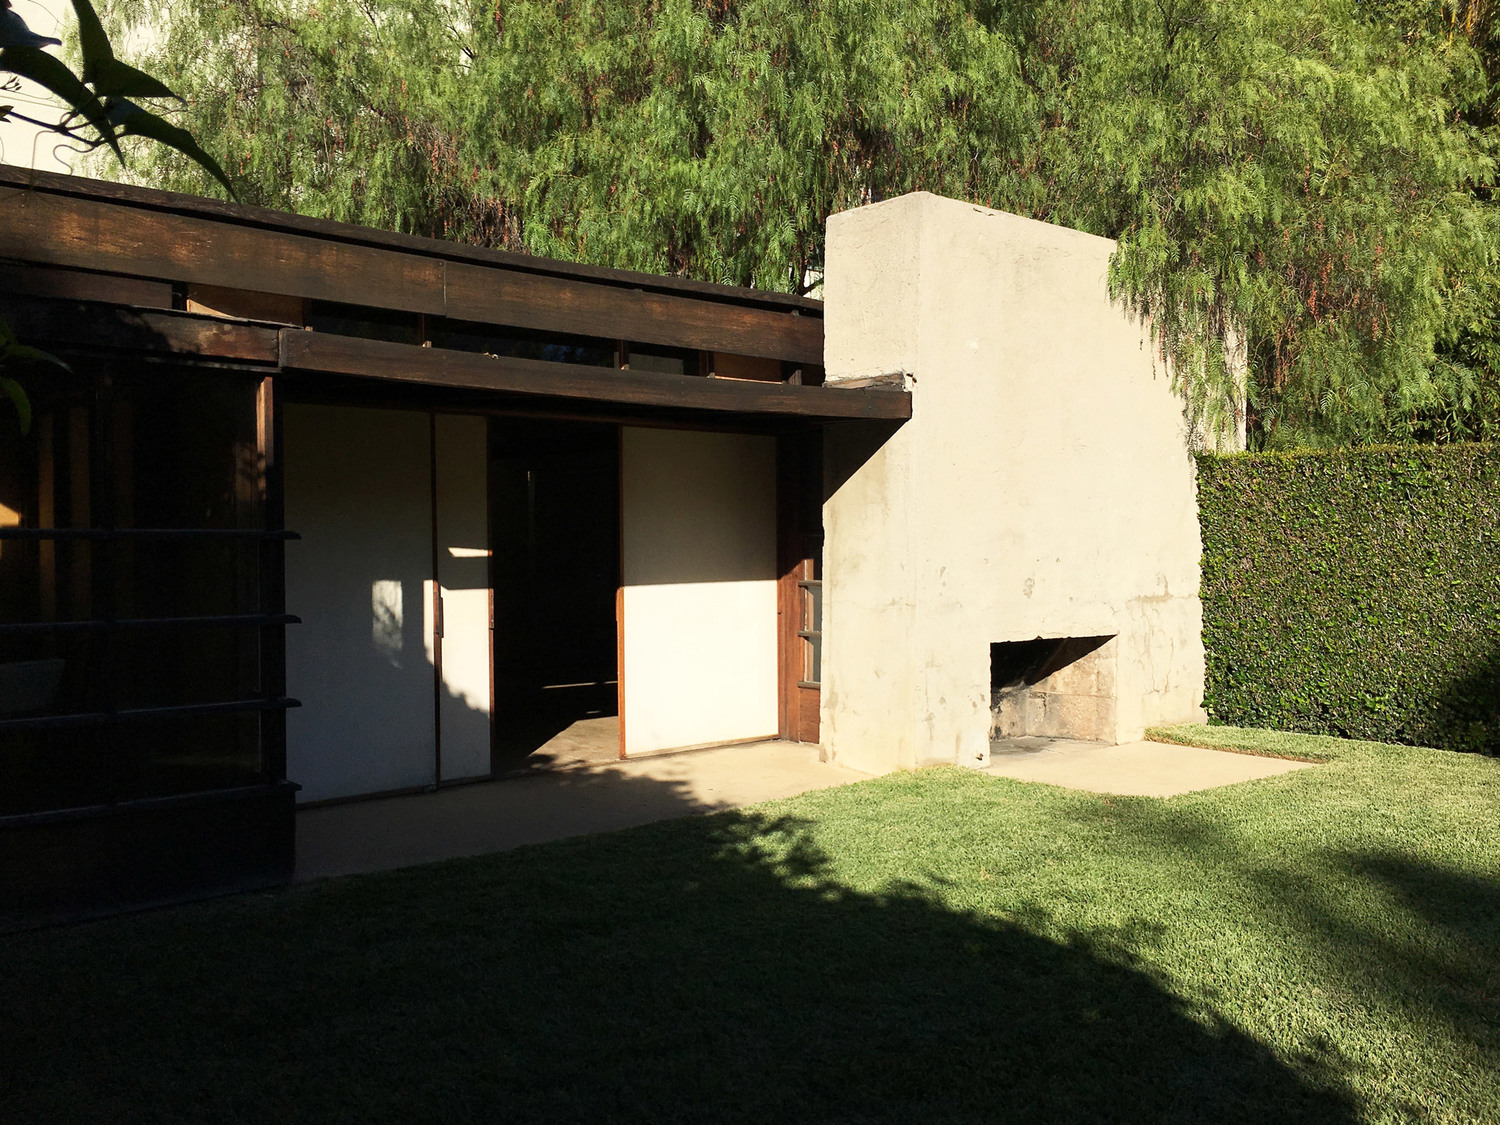 urbanbacklog-los-angeles-schindler-house-mac-center-1.jpeg